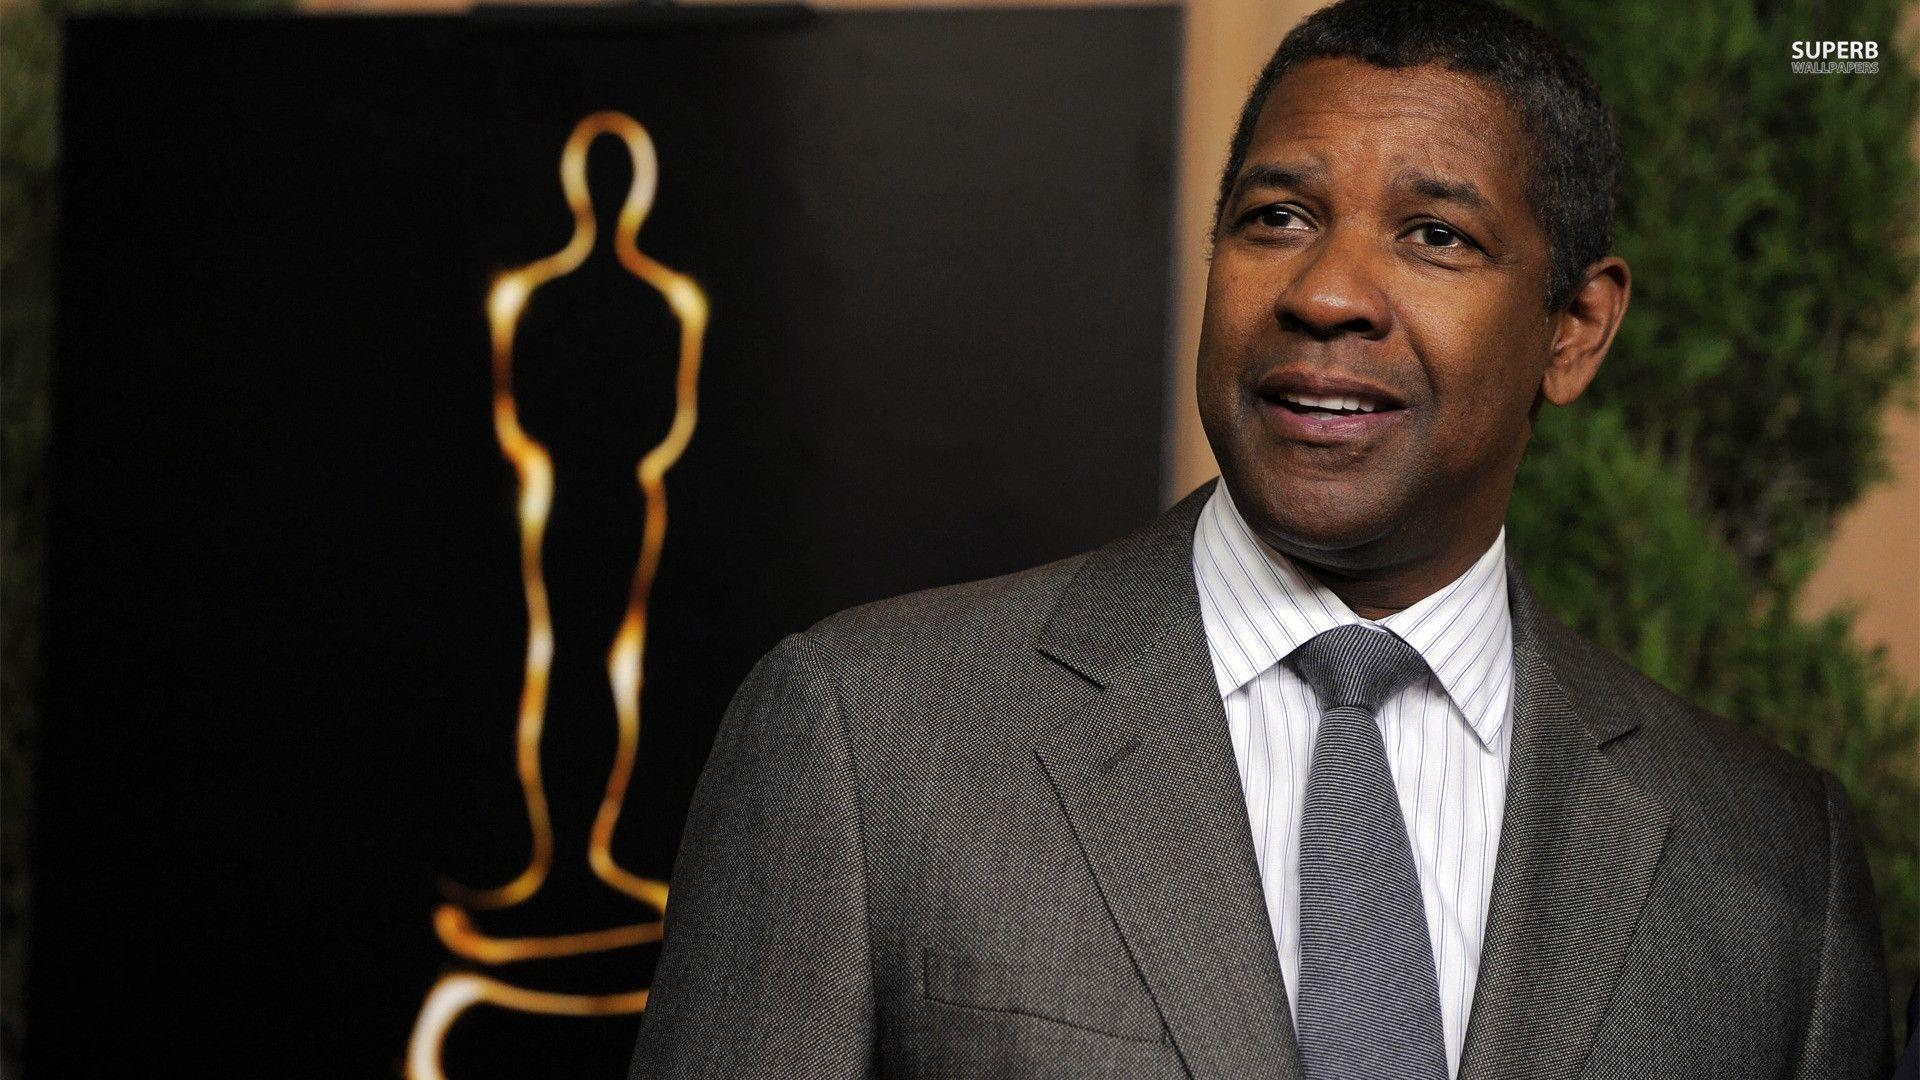 Denzel Washington wallpaper - Male celebrity wallpapers - #